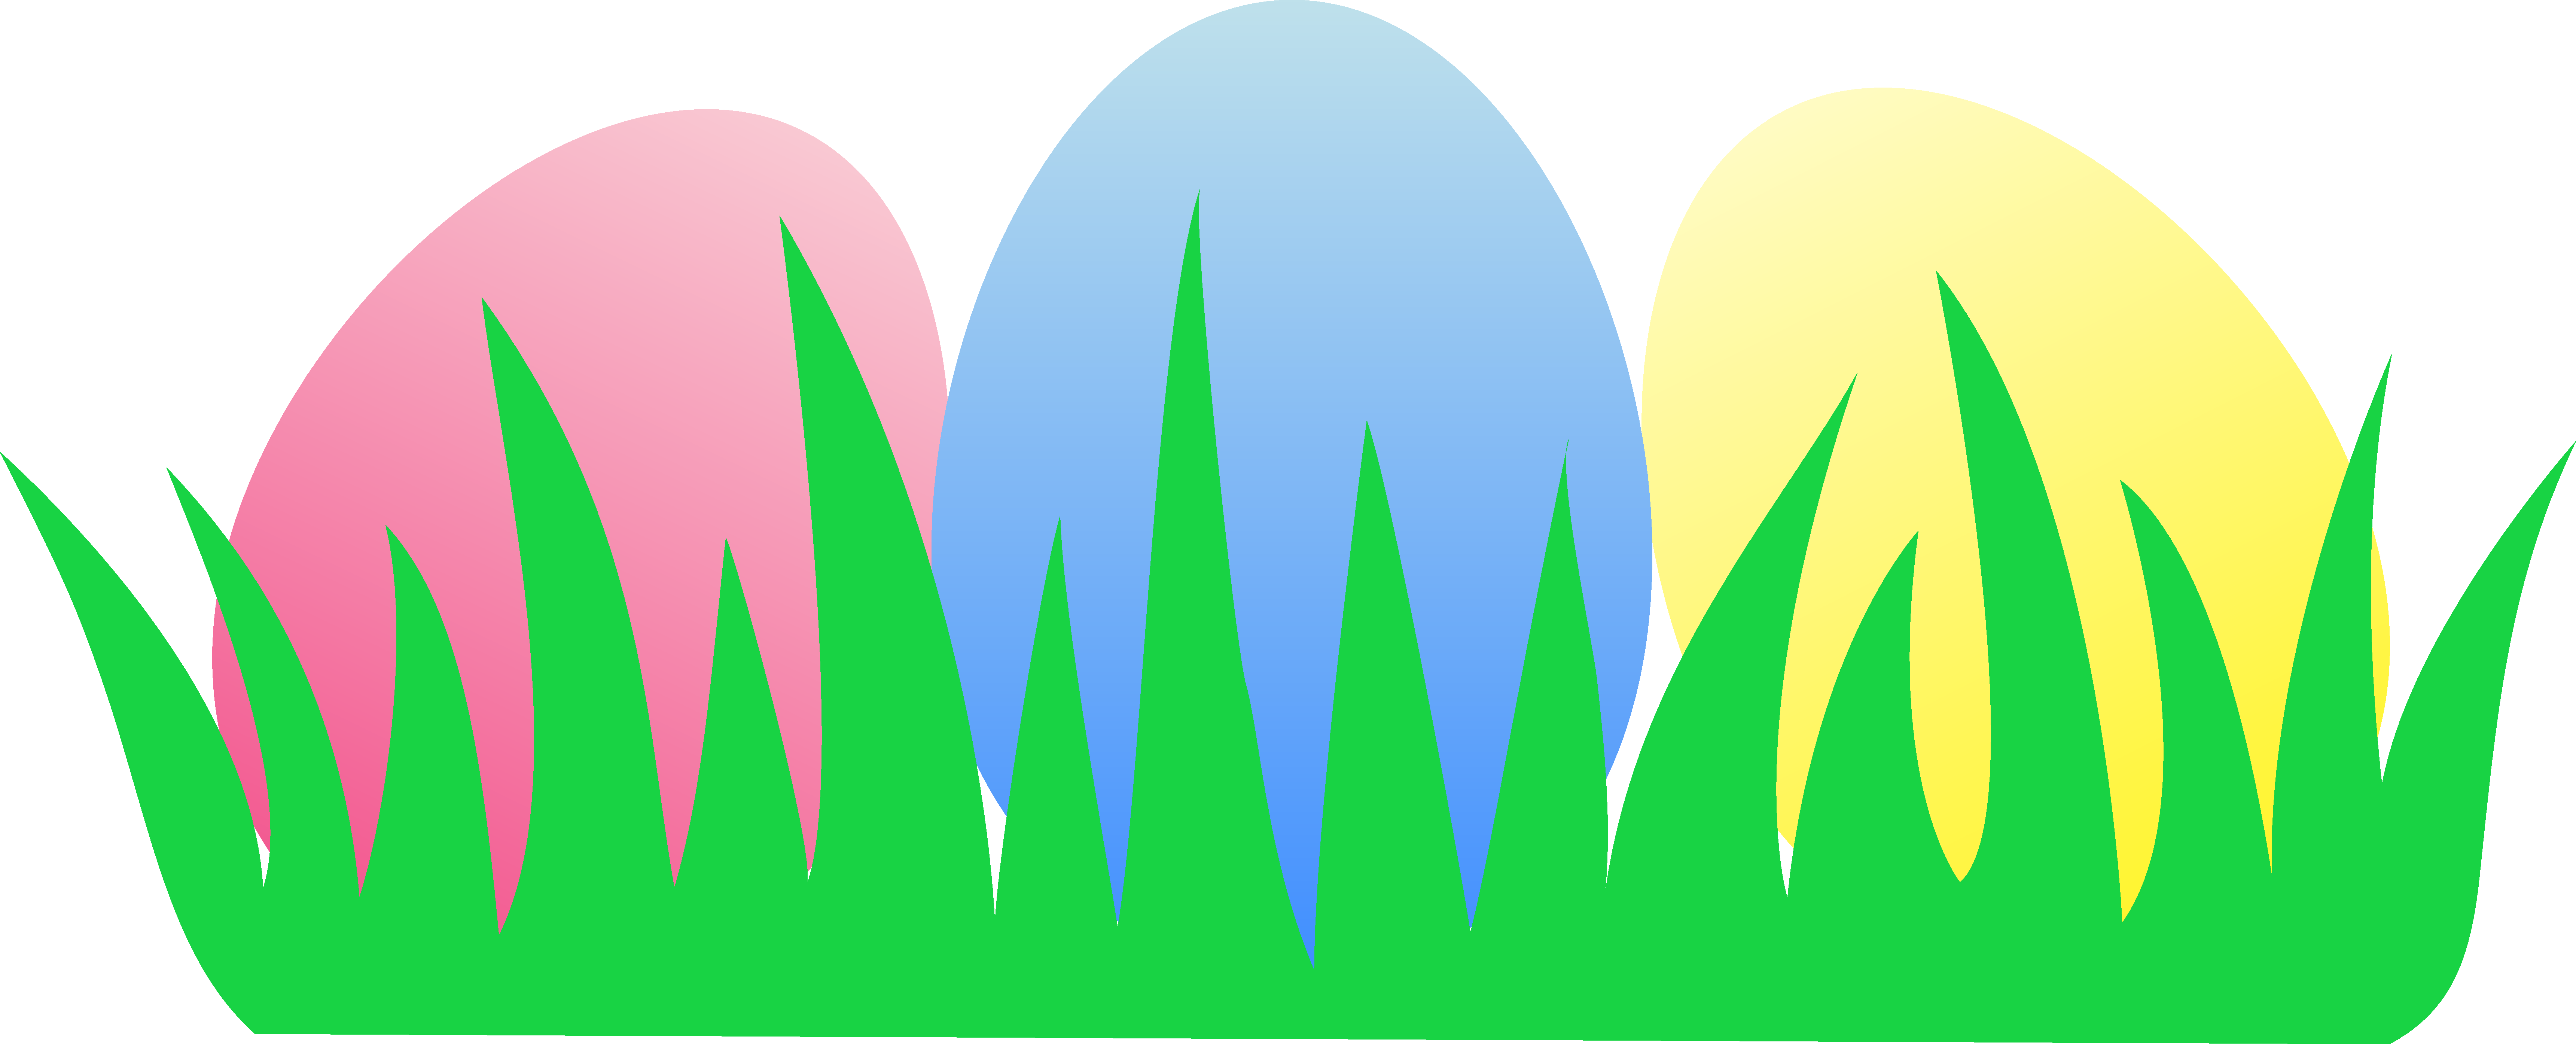 Egg hunt clipart free png royalty free library Free easter egg clipart - ClipartFest png royalty free library